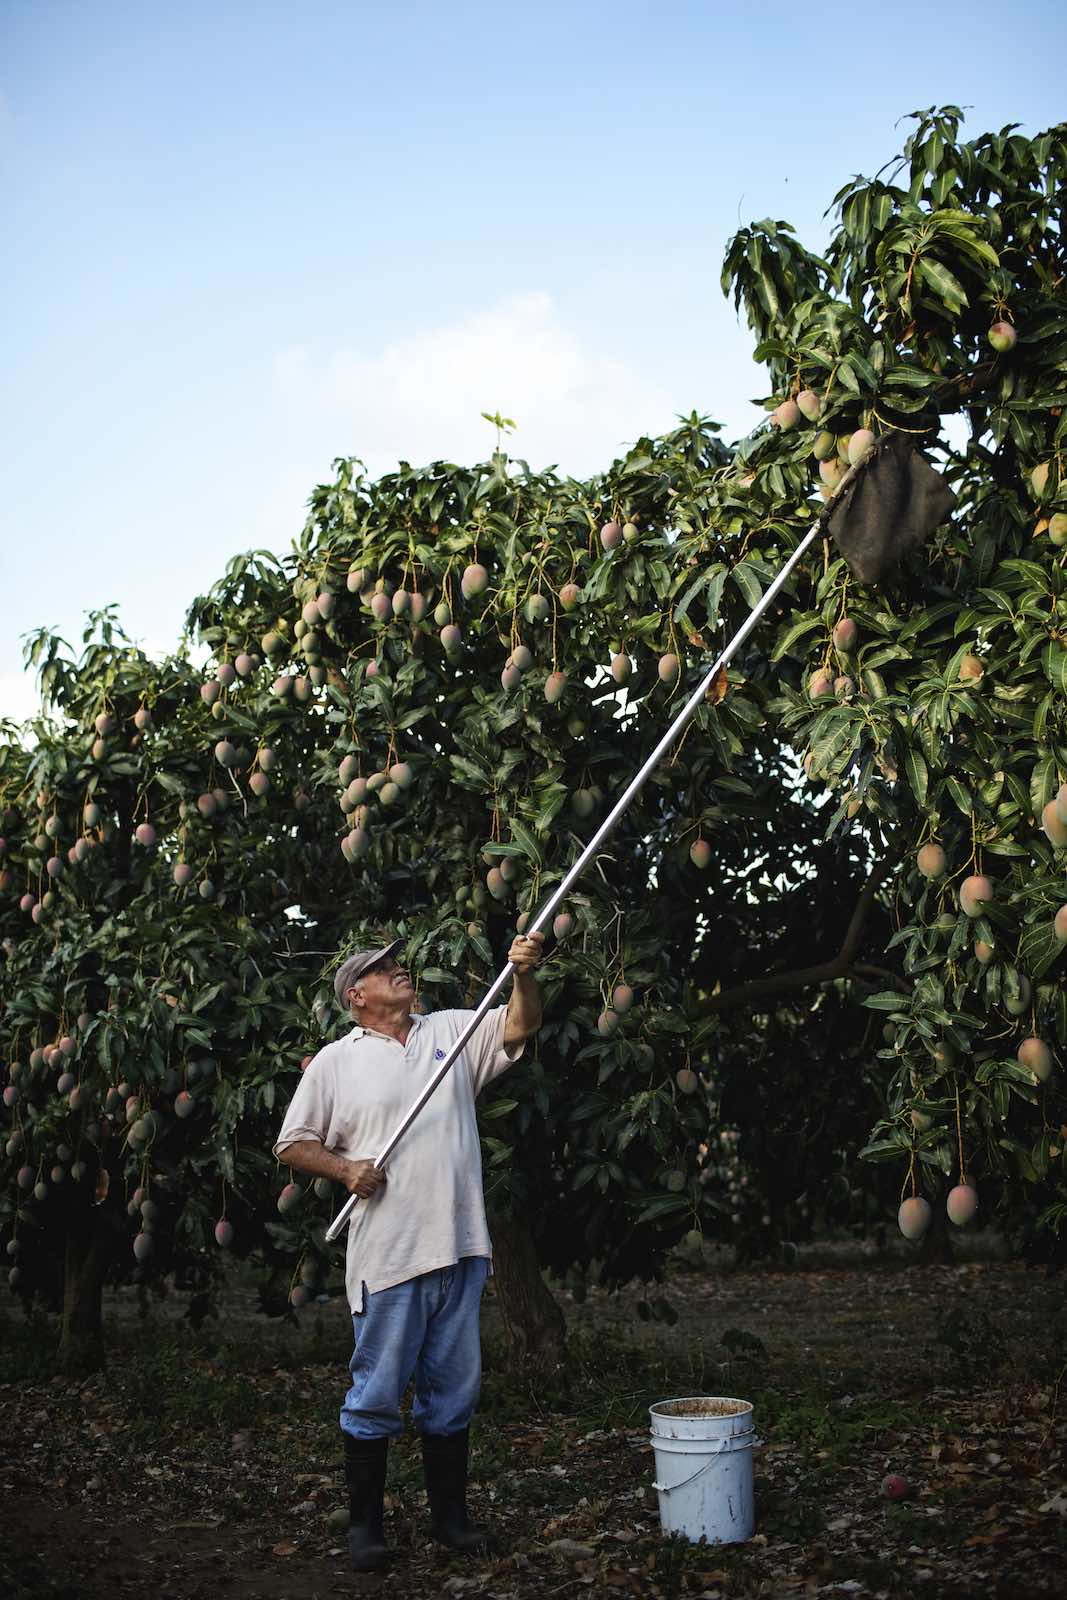 Jody Horton Photography - Farmer using a long pole to pick mangos from the tops of trees.